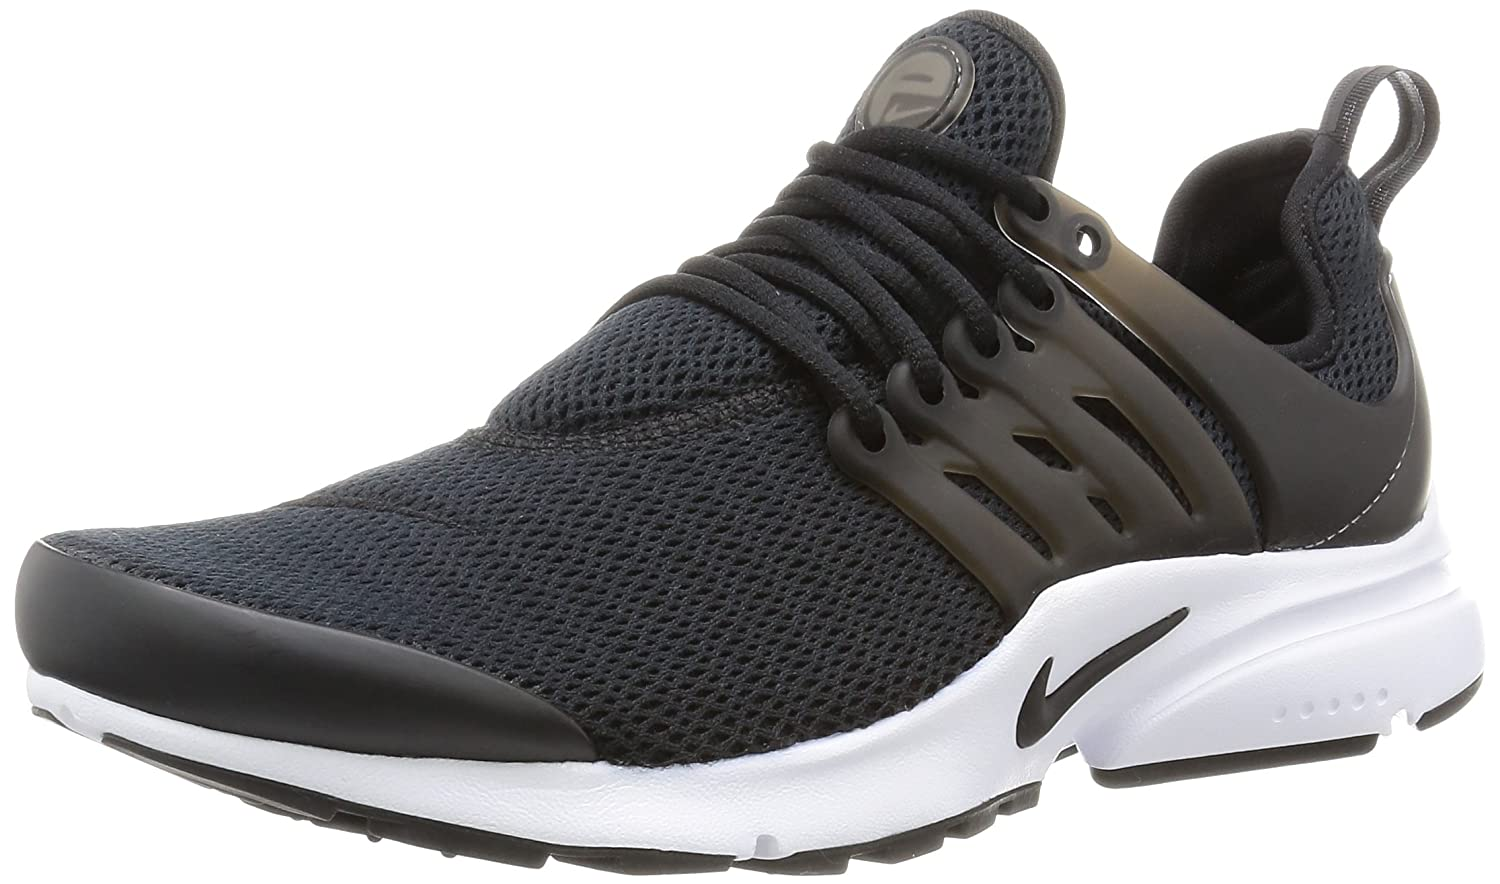 detailed look 5f105 08481 Nike Women's Air Presto Running Shoe